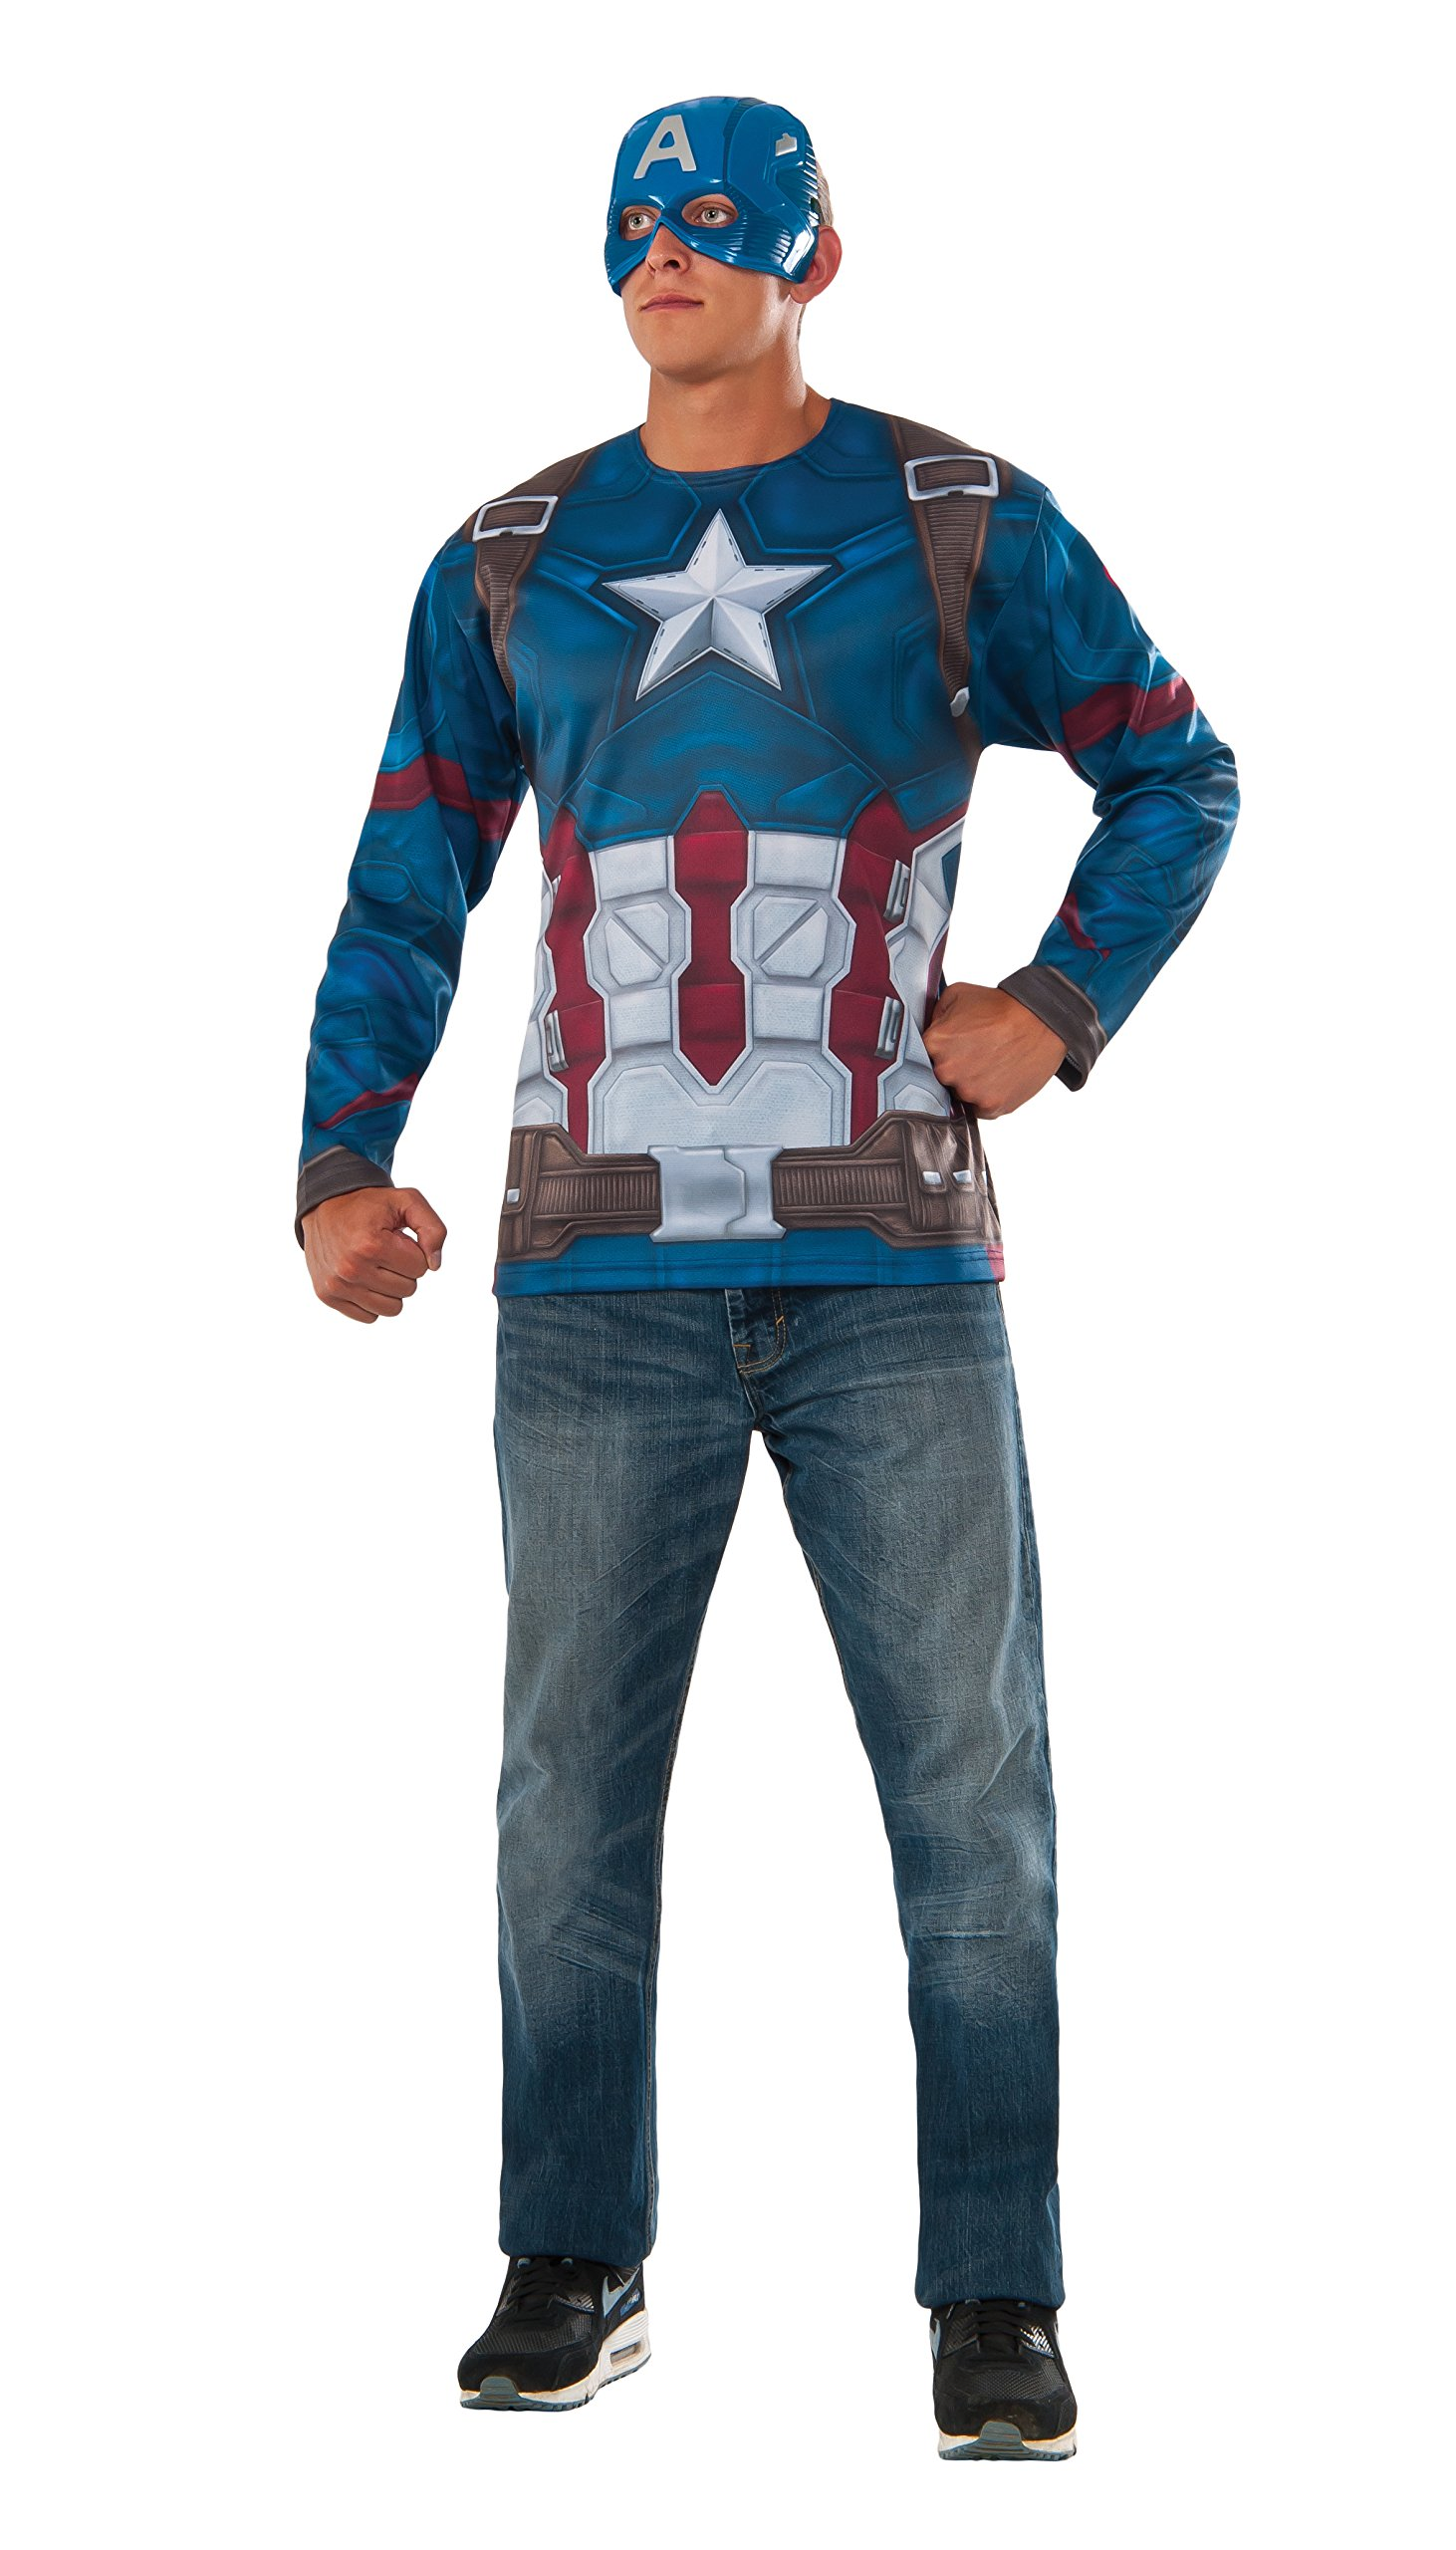 Rubie's Costume Co Captain America: Civil War Captain America Costume Top & Mask, Multi, Extra Large